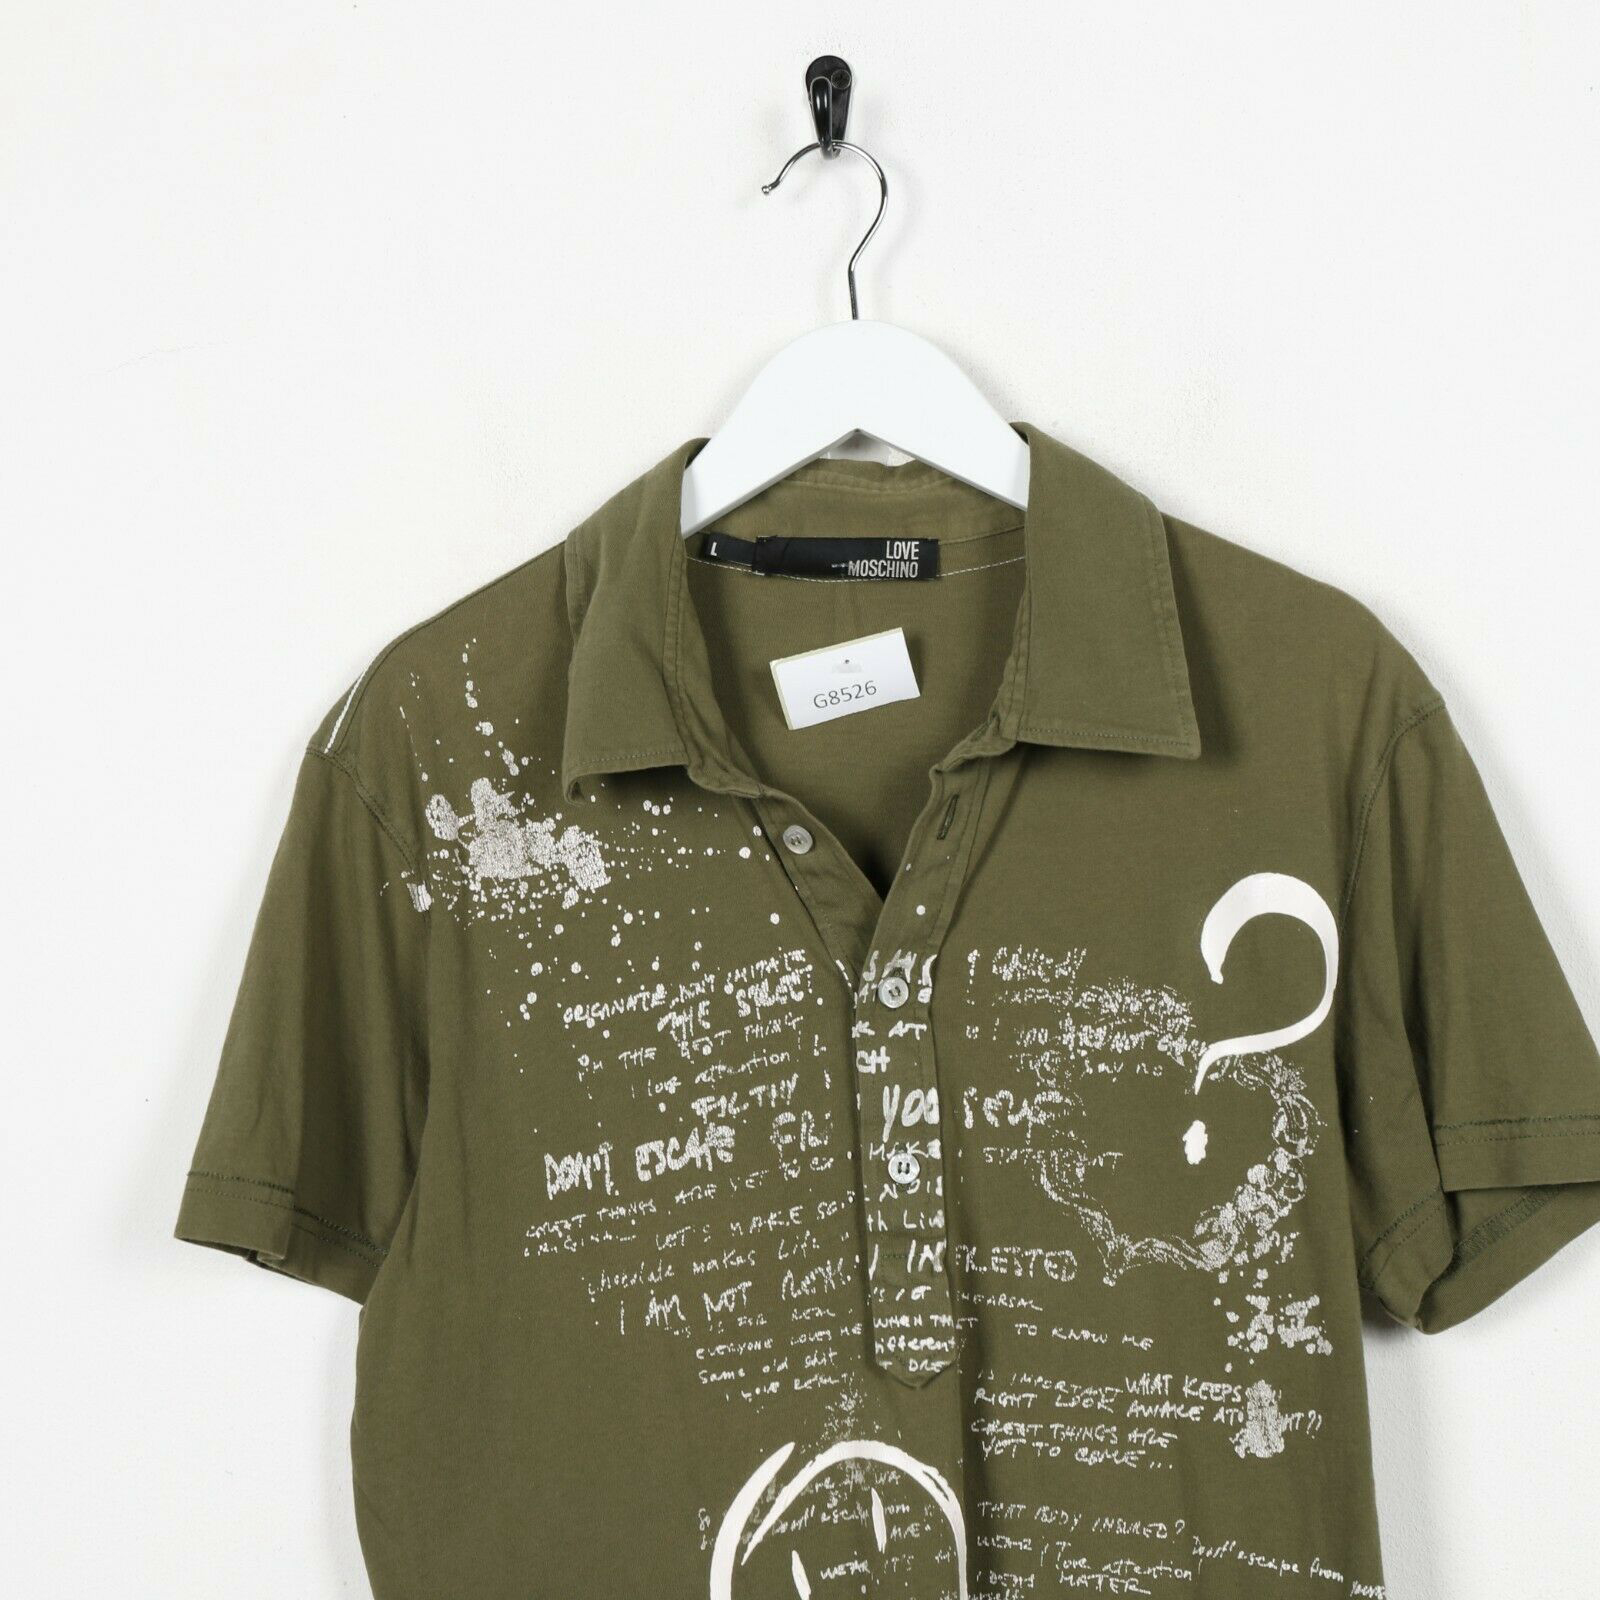 Vintage Shirt  Retro Shirt  Vintage Polo Gold Graphic Tee  Vintage Collared Top  Green Pink  Large L